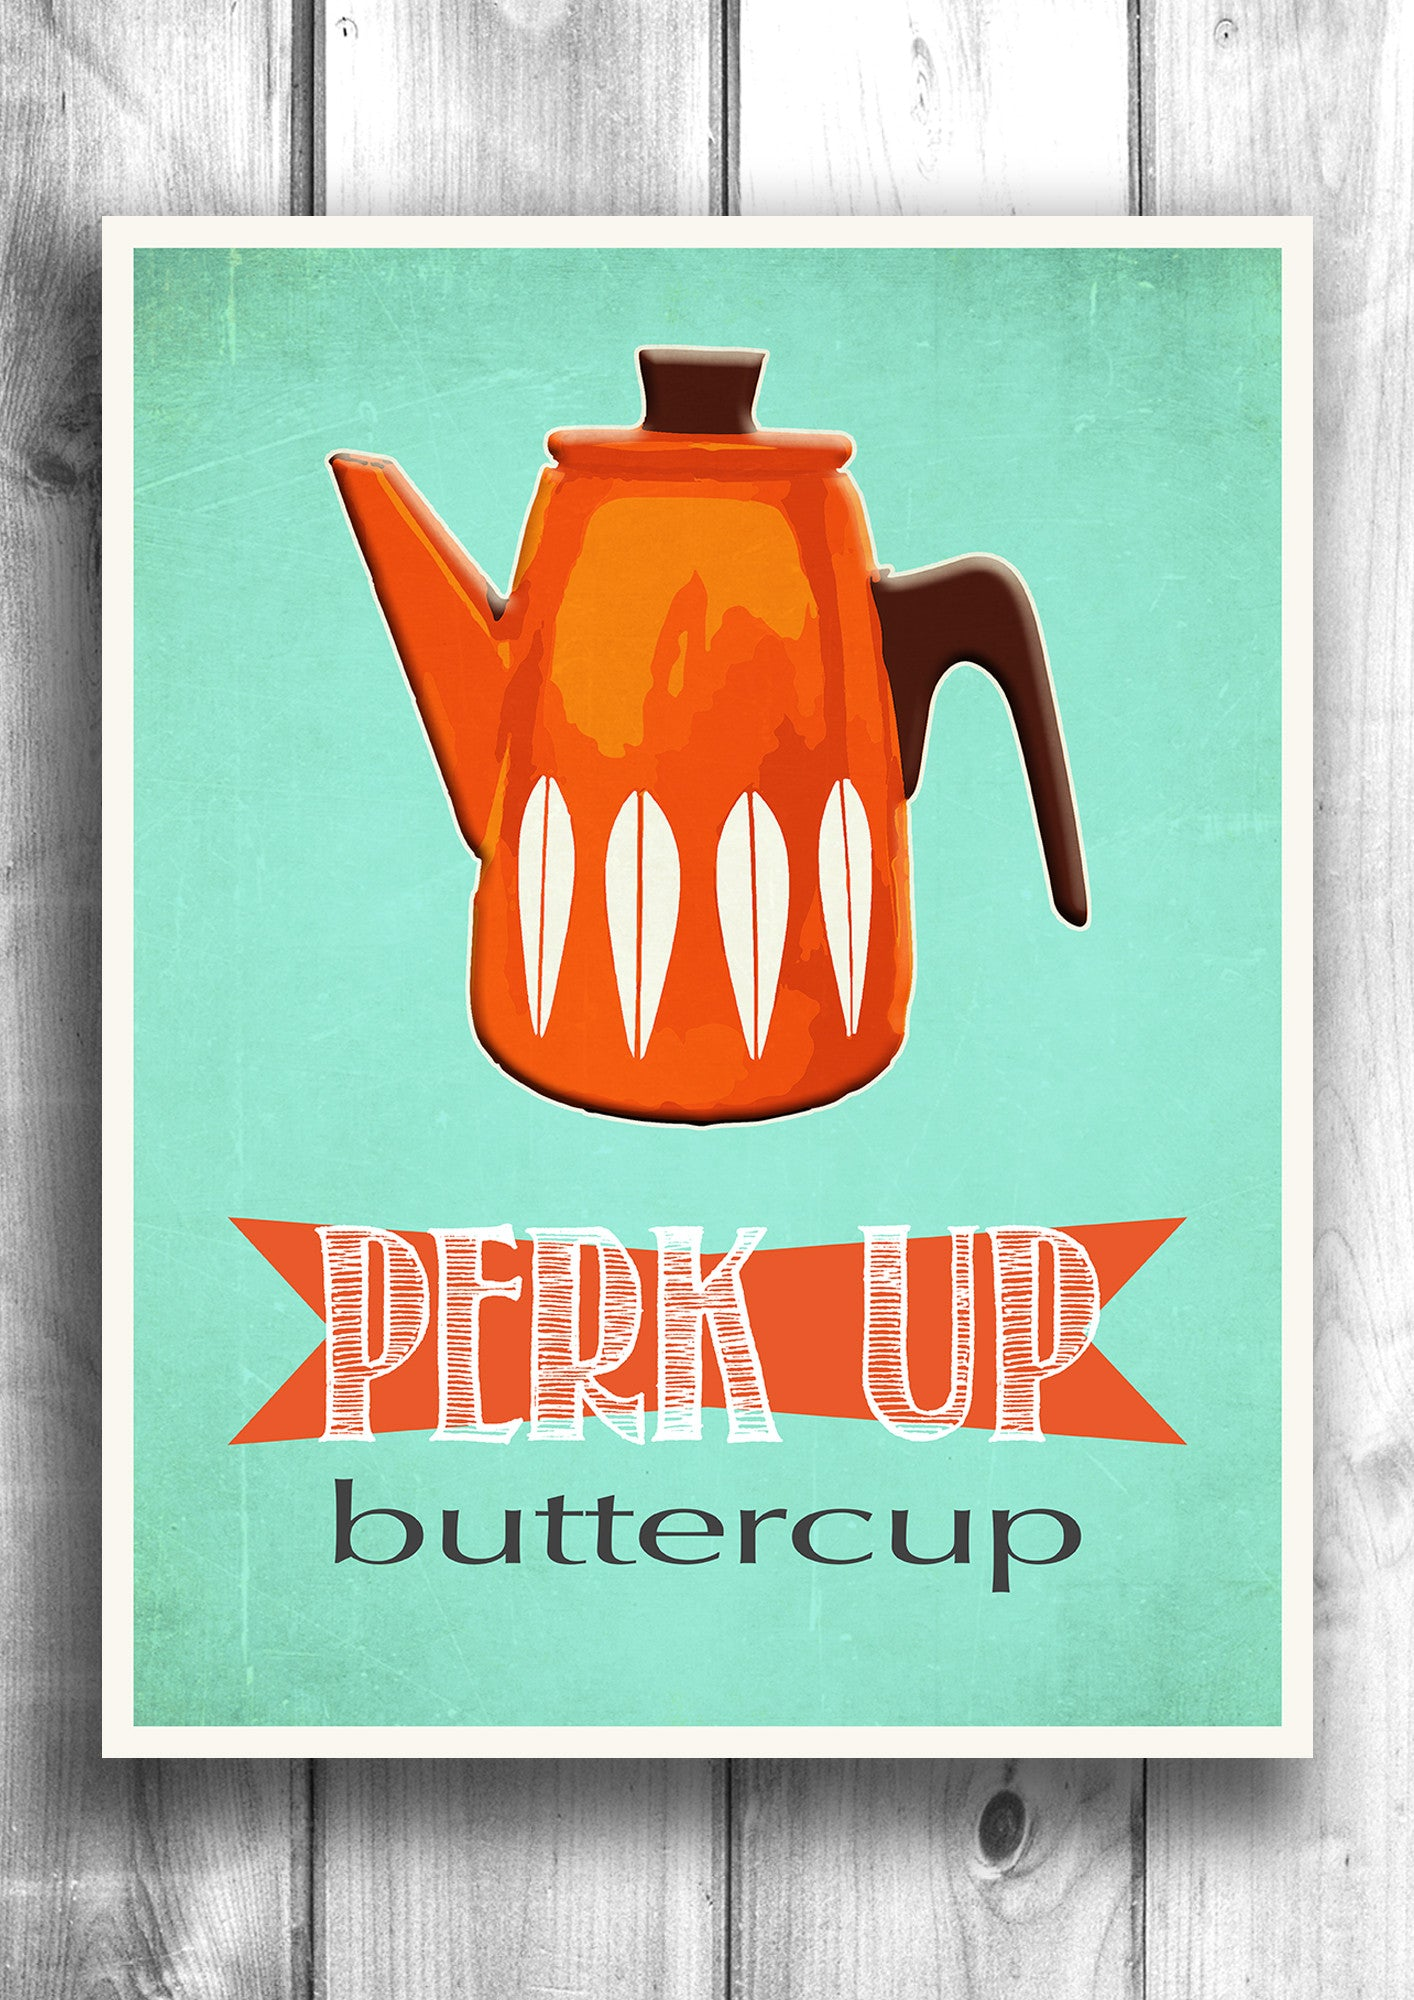 Perk up butter cup - Fine art letterpress poster - Kitchen decor - Coffee Print